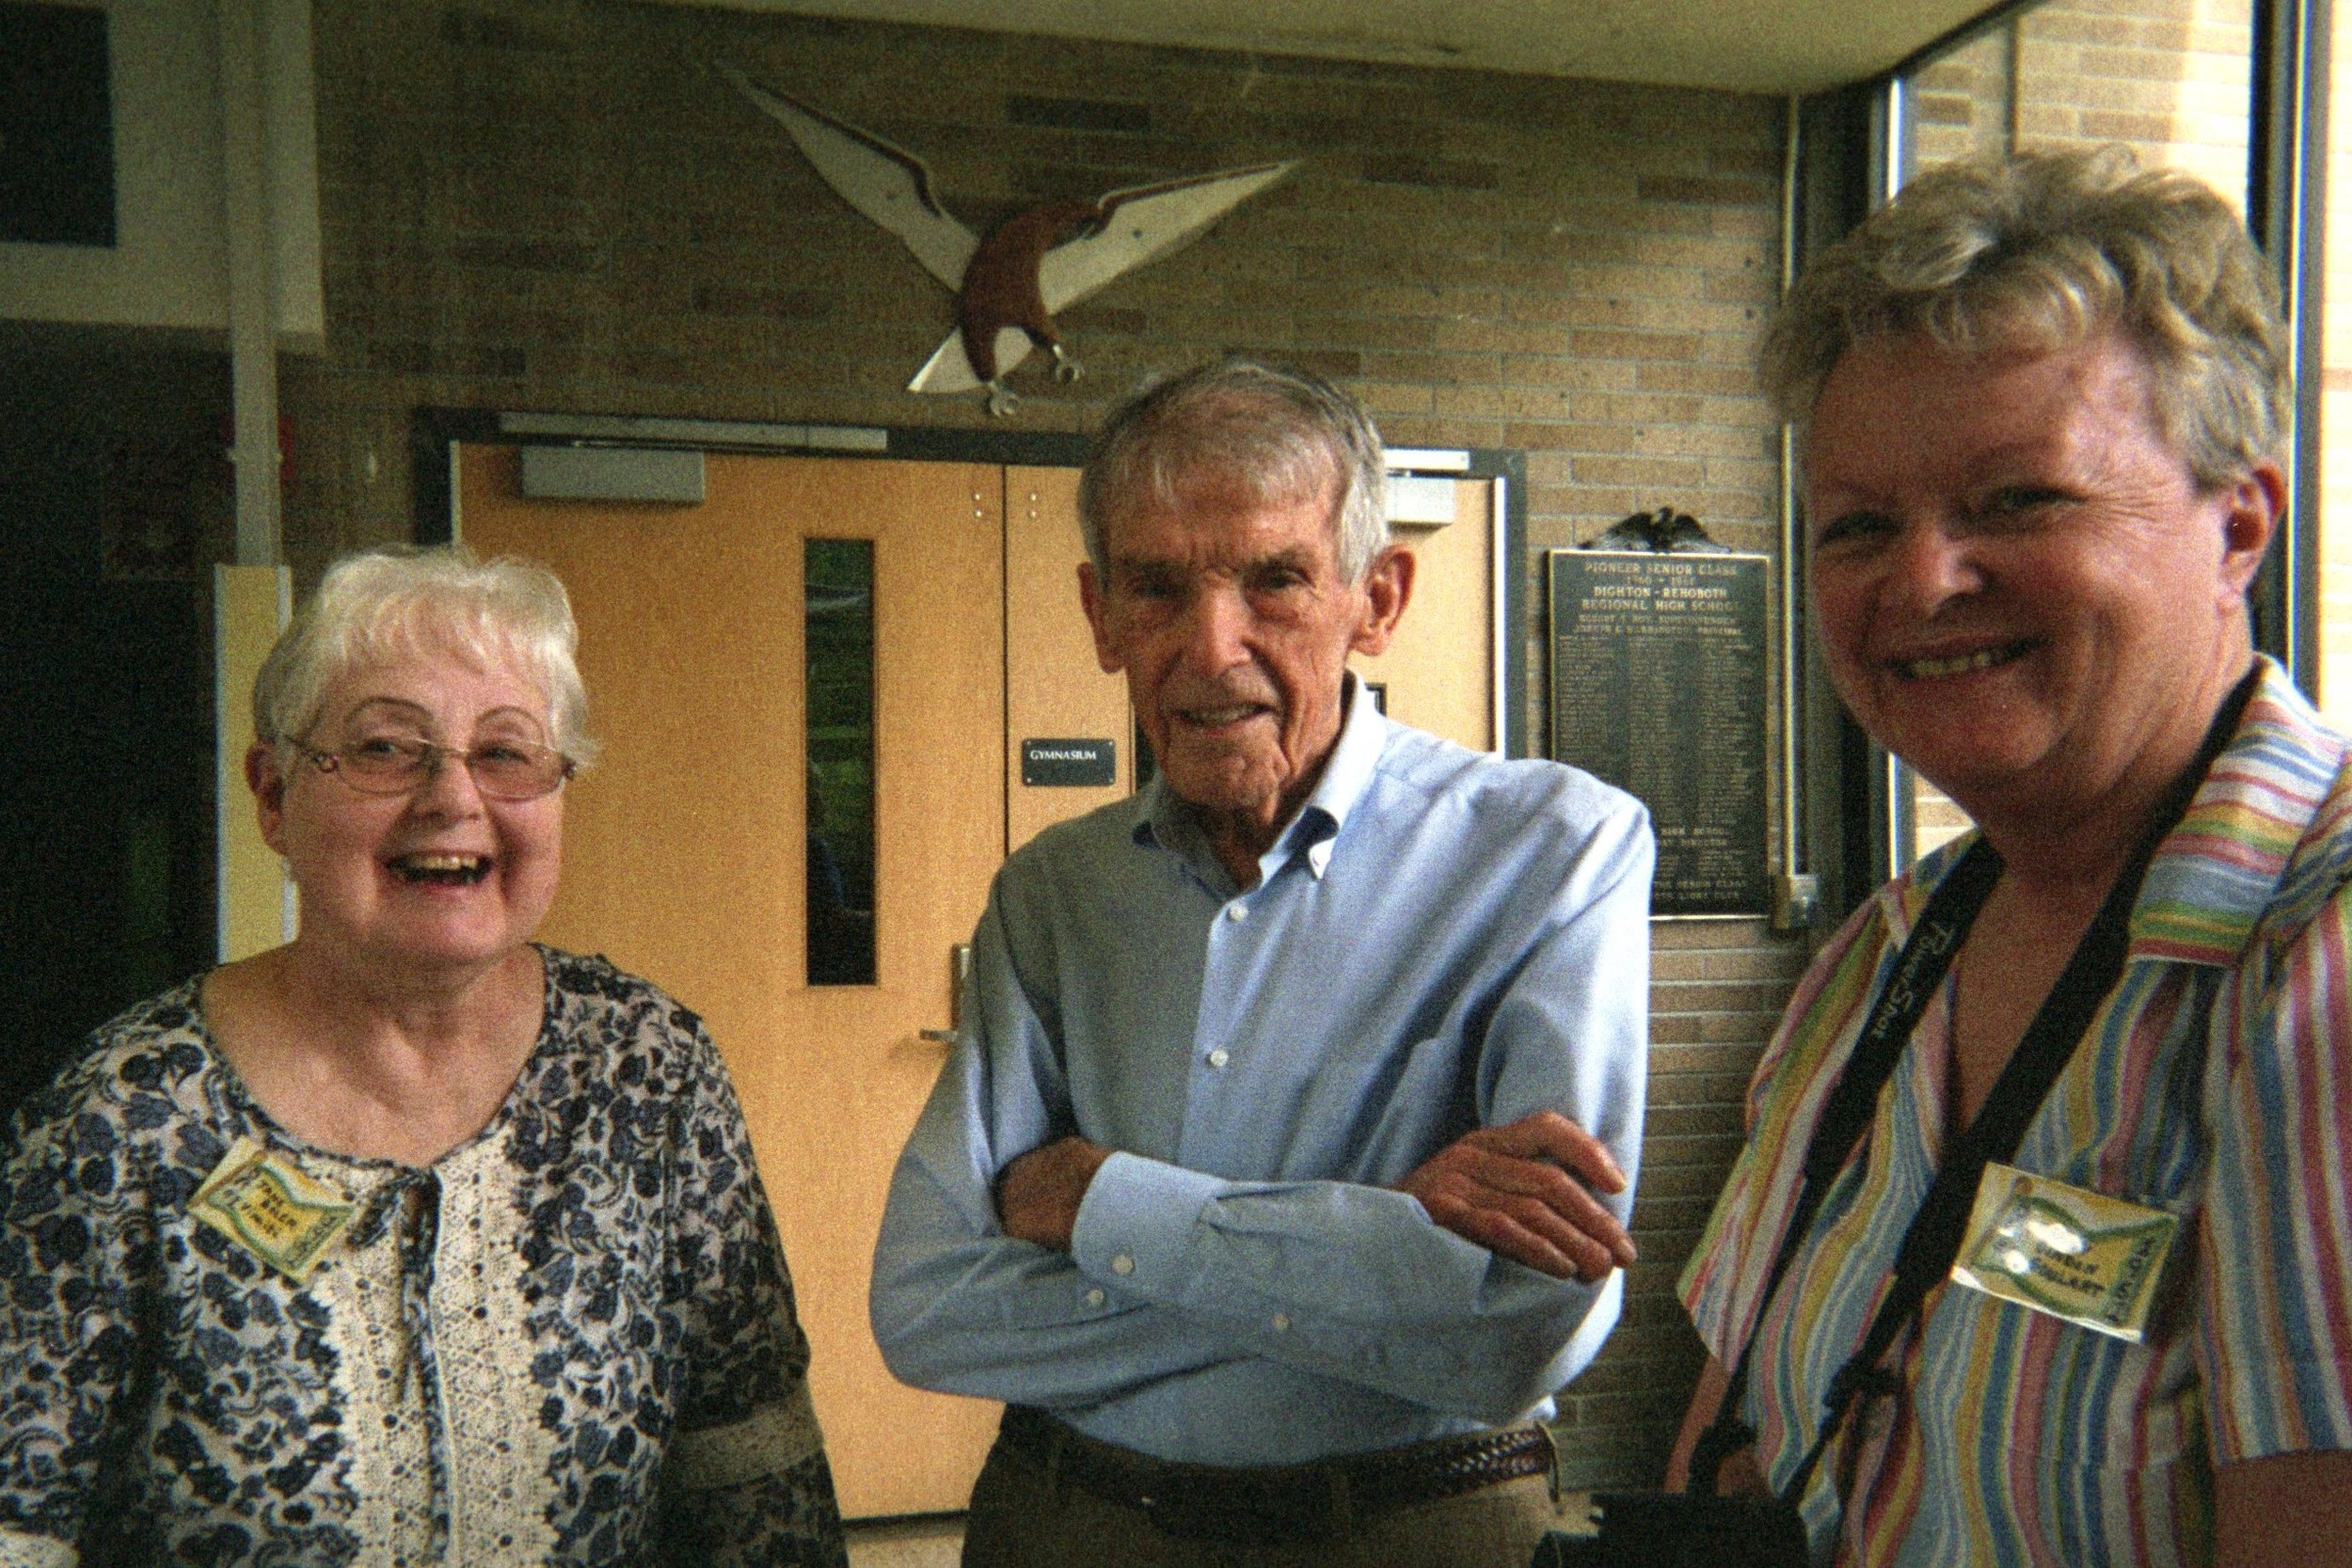 Surprise Visitor At School Tour:  The Reunion Committee kept secret that Dr. Joseph C. Harrington, the first principal, was there to greet his students, graduates almost to the day of 56 years ago.  Beneath the Falcon mascot by the gymnasium door, he is shown with Jane Boler Vinniti from Rehoboth and Nancy Binden Goulart from Dighton.  In the background is the plaque naming all 112 First Falcons.